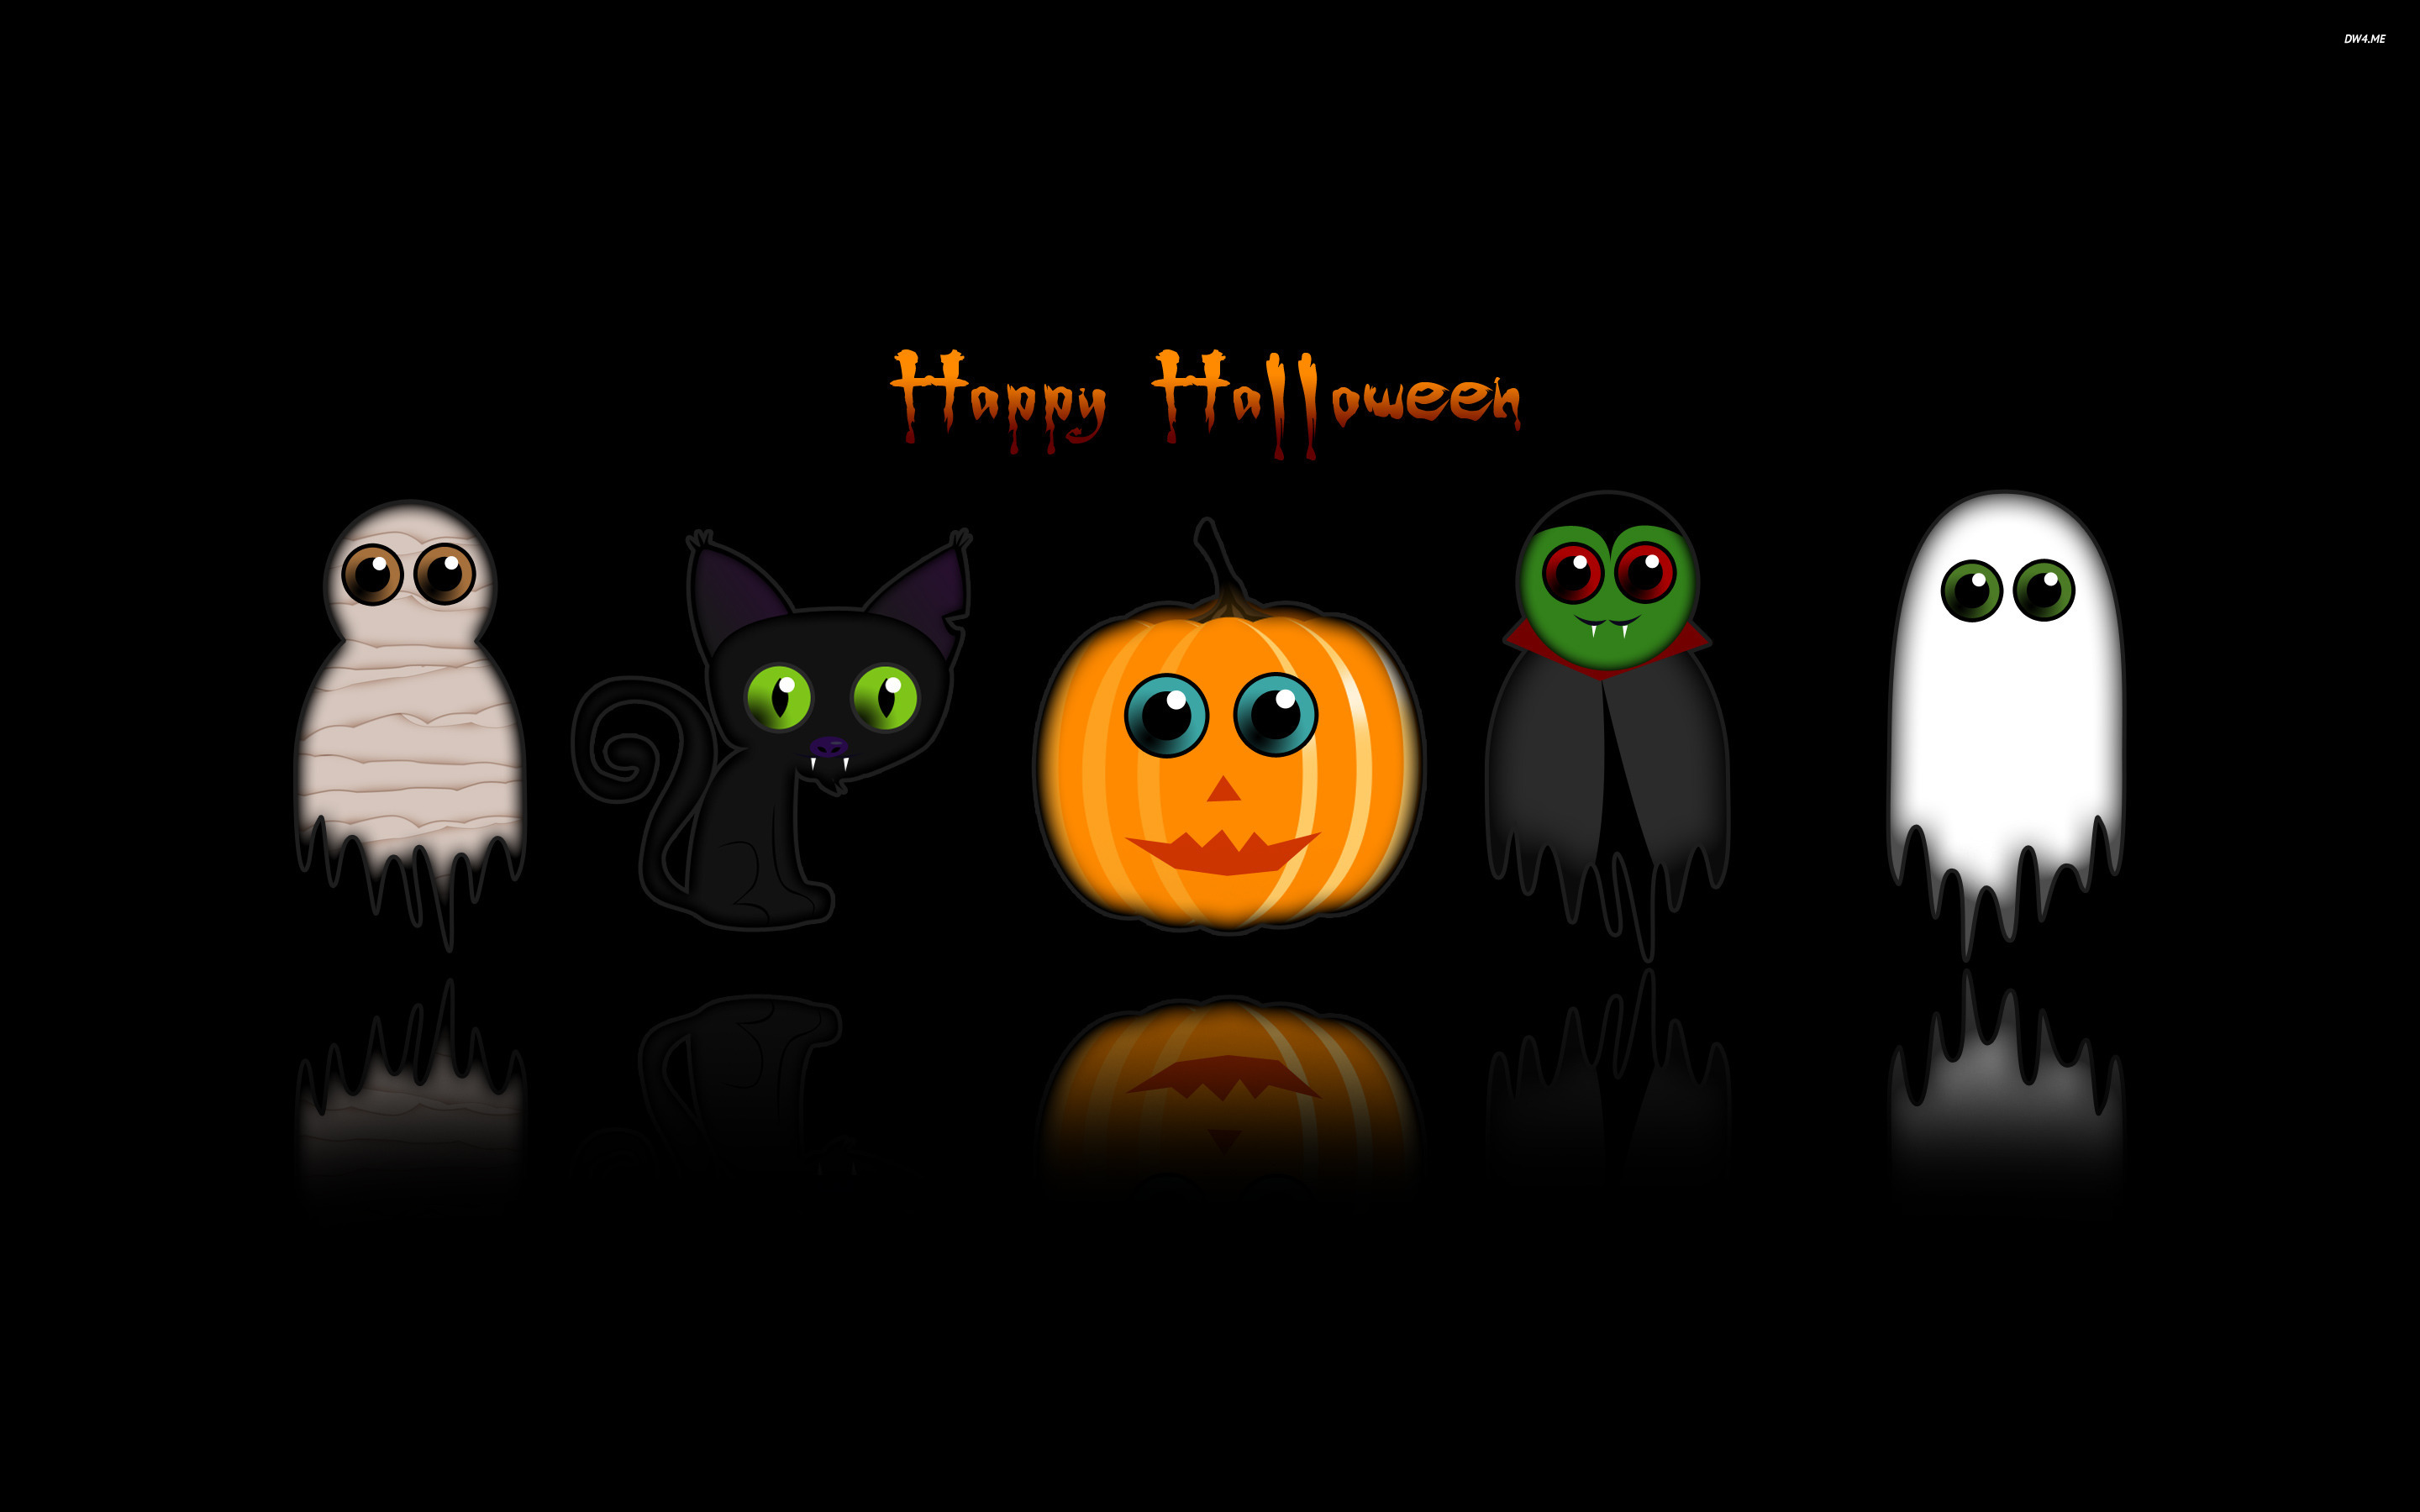 Happy Halloween wallpaper   1009348 2880x1800